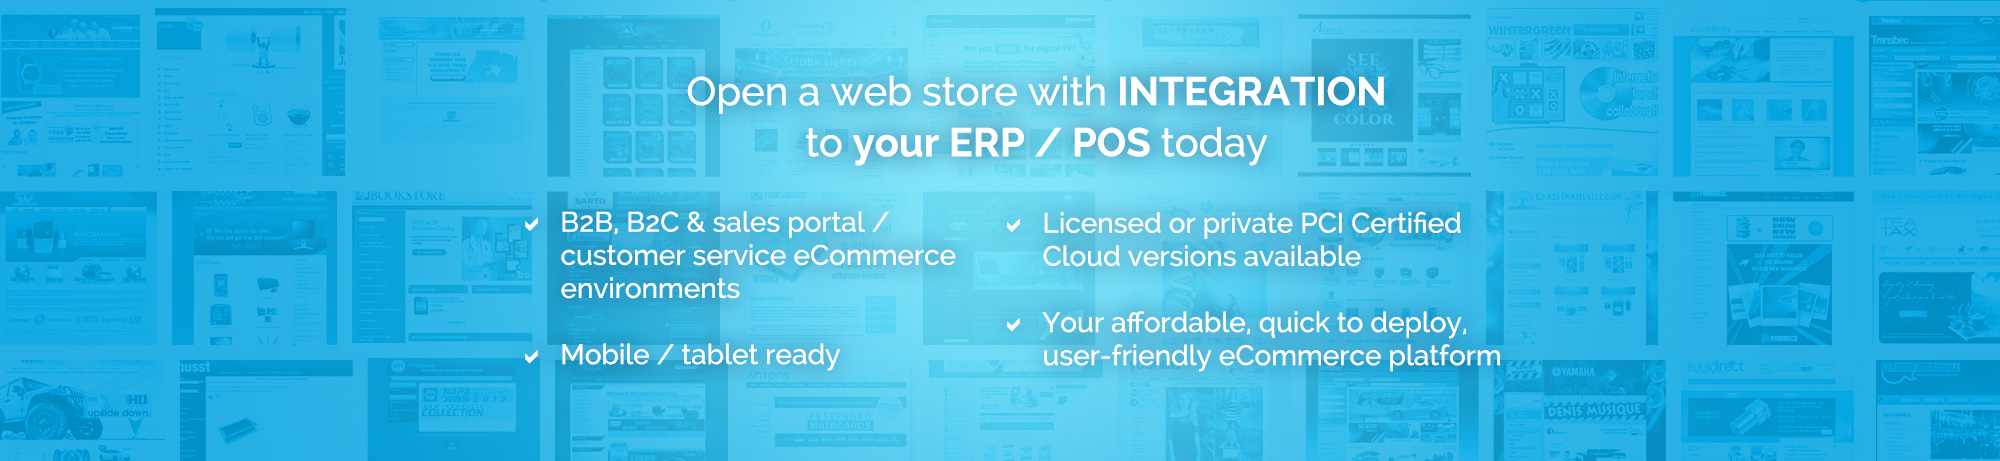 Open a web store with integration to your ERP